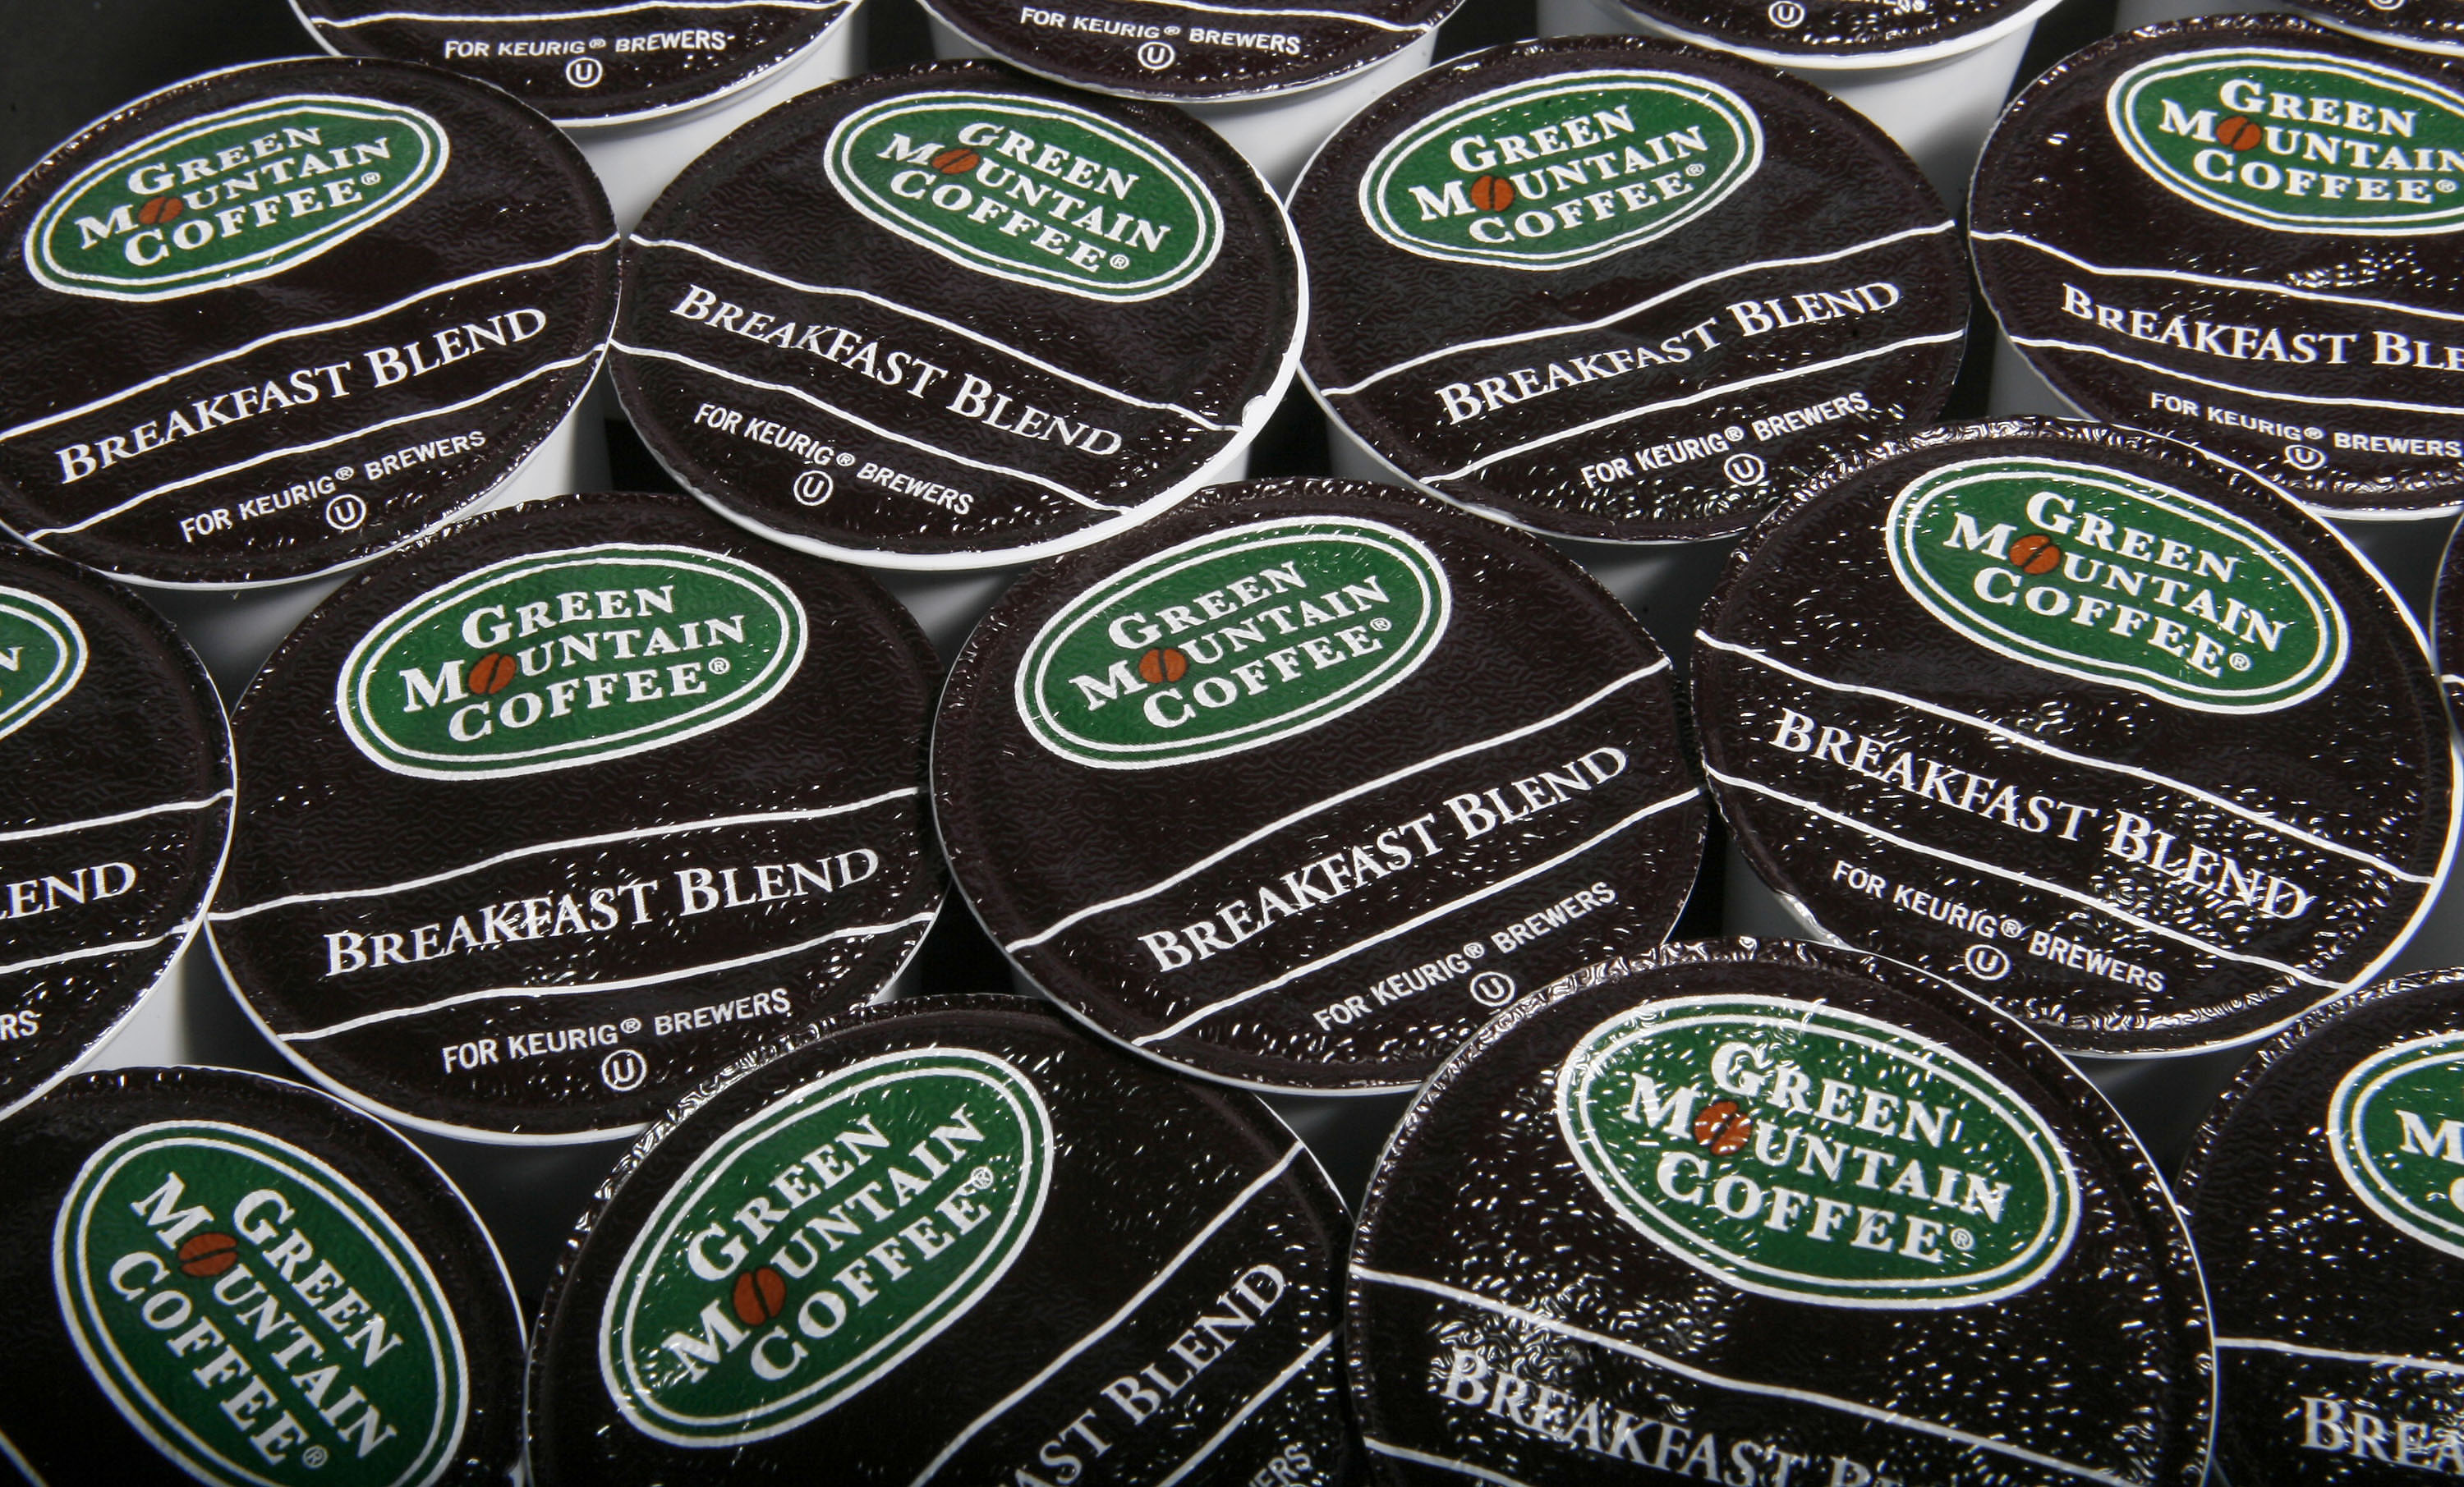 Single-serve pods may be reducing demand for coffee